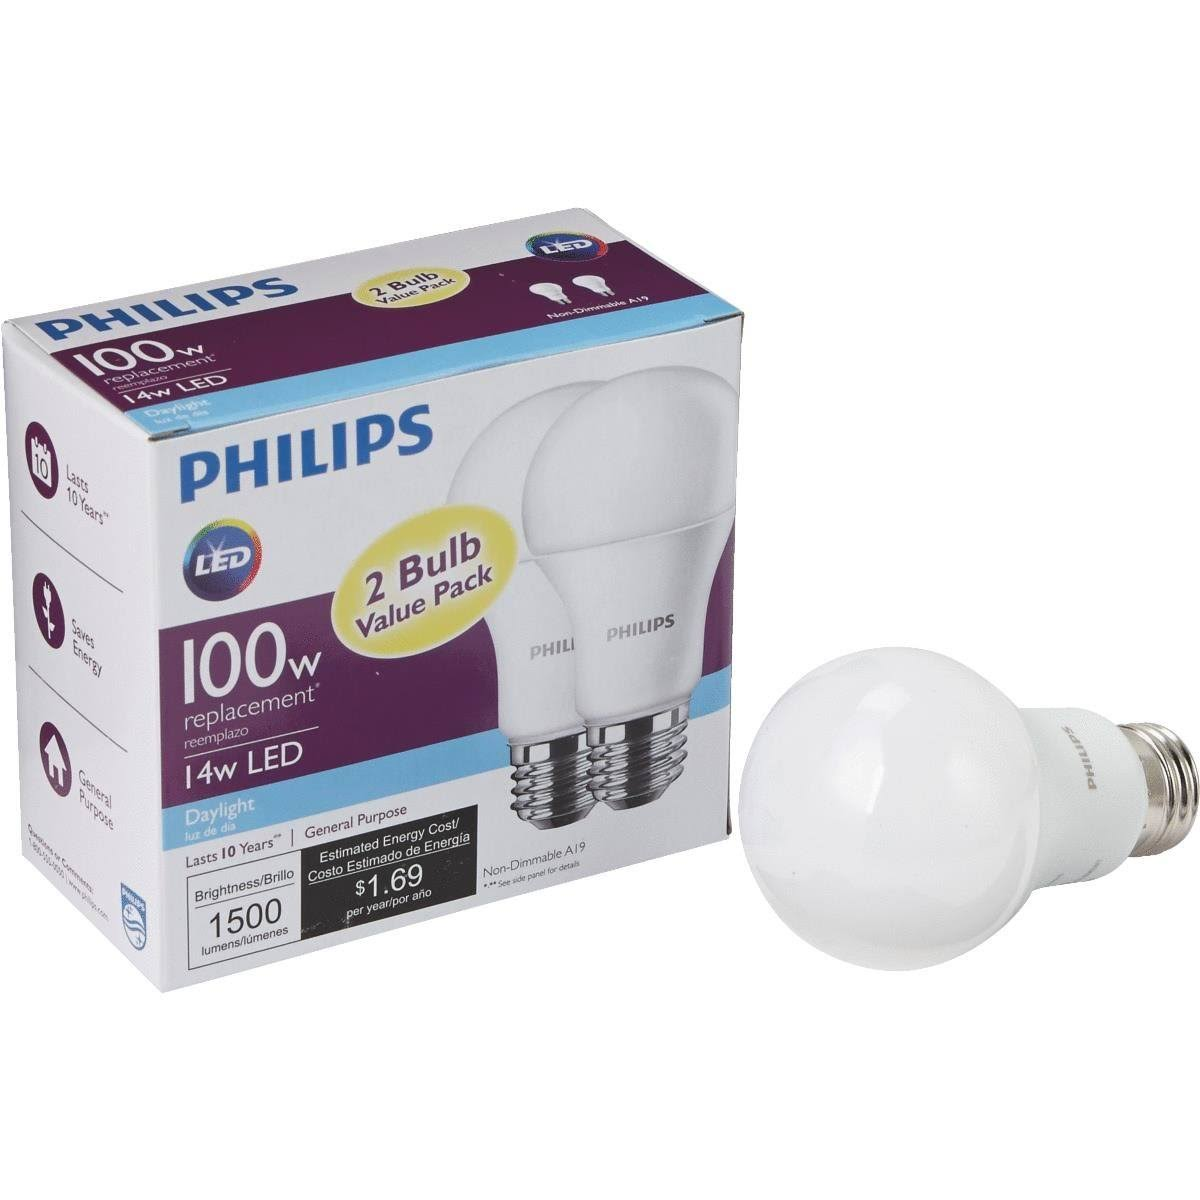 Philips A19 LED Light Bulb 462002